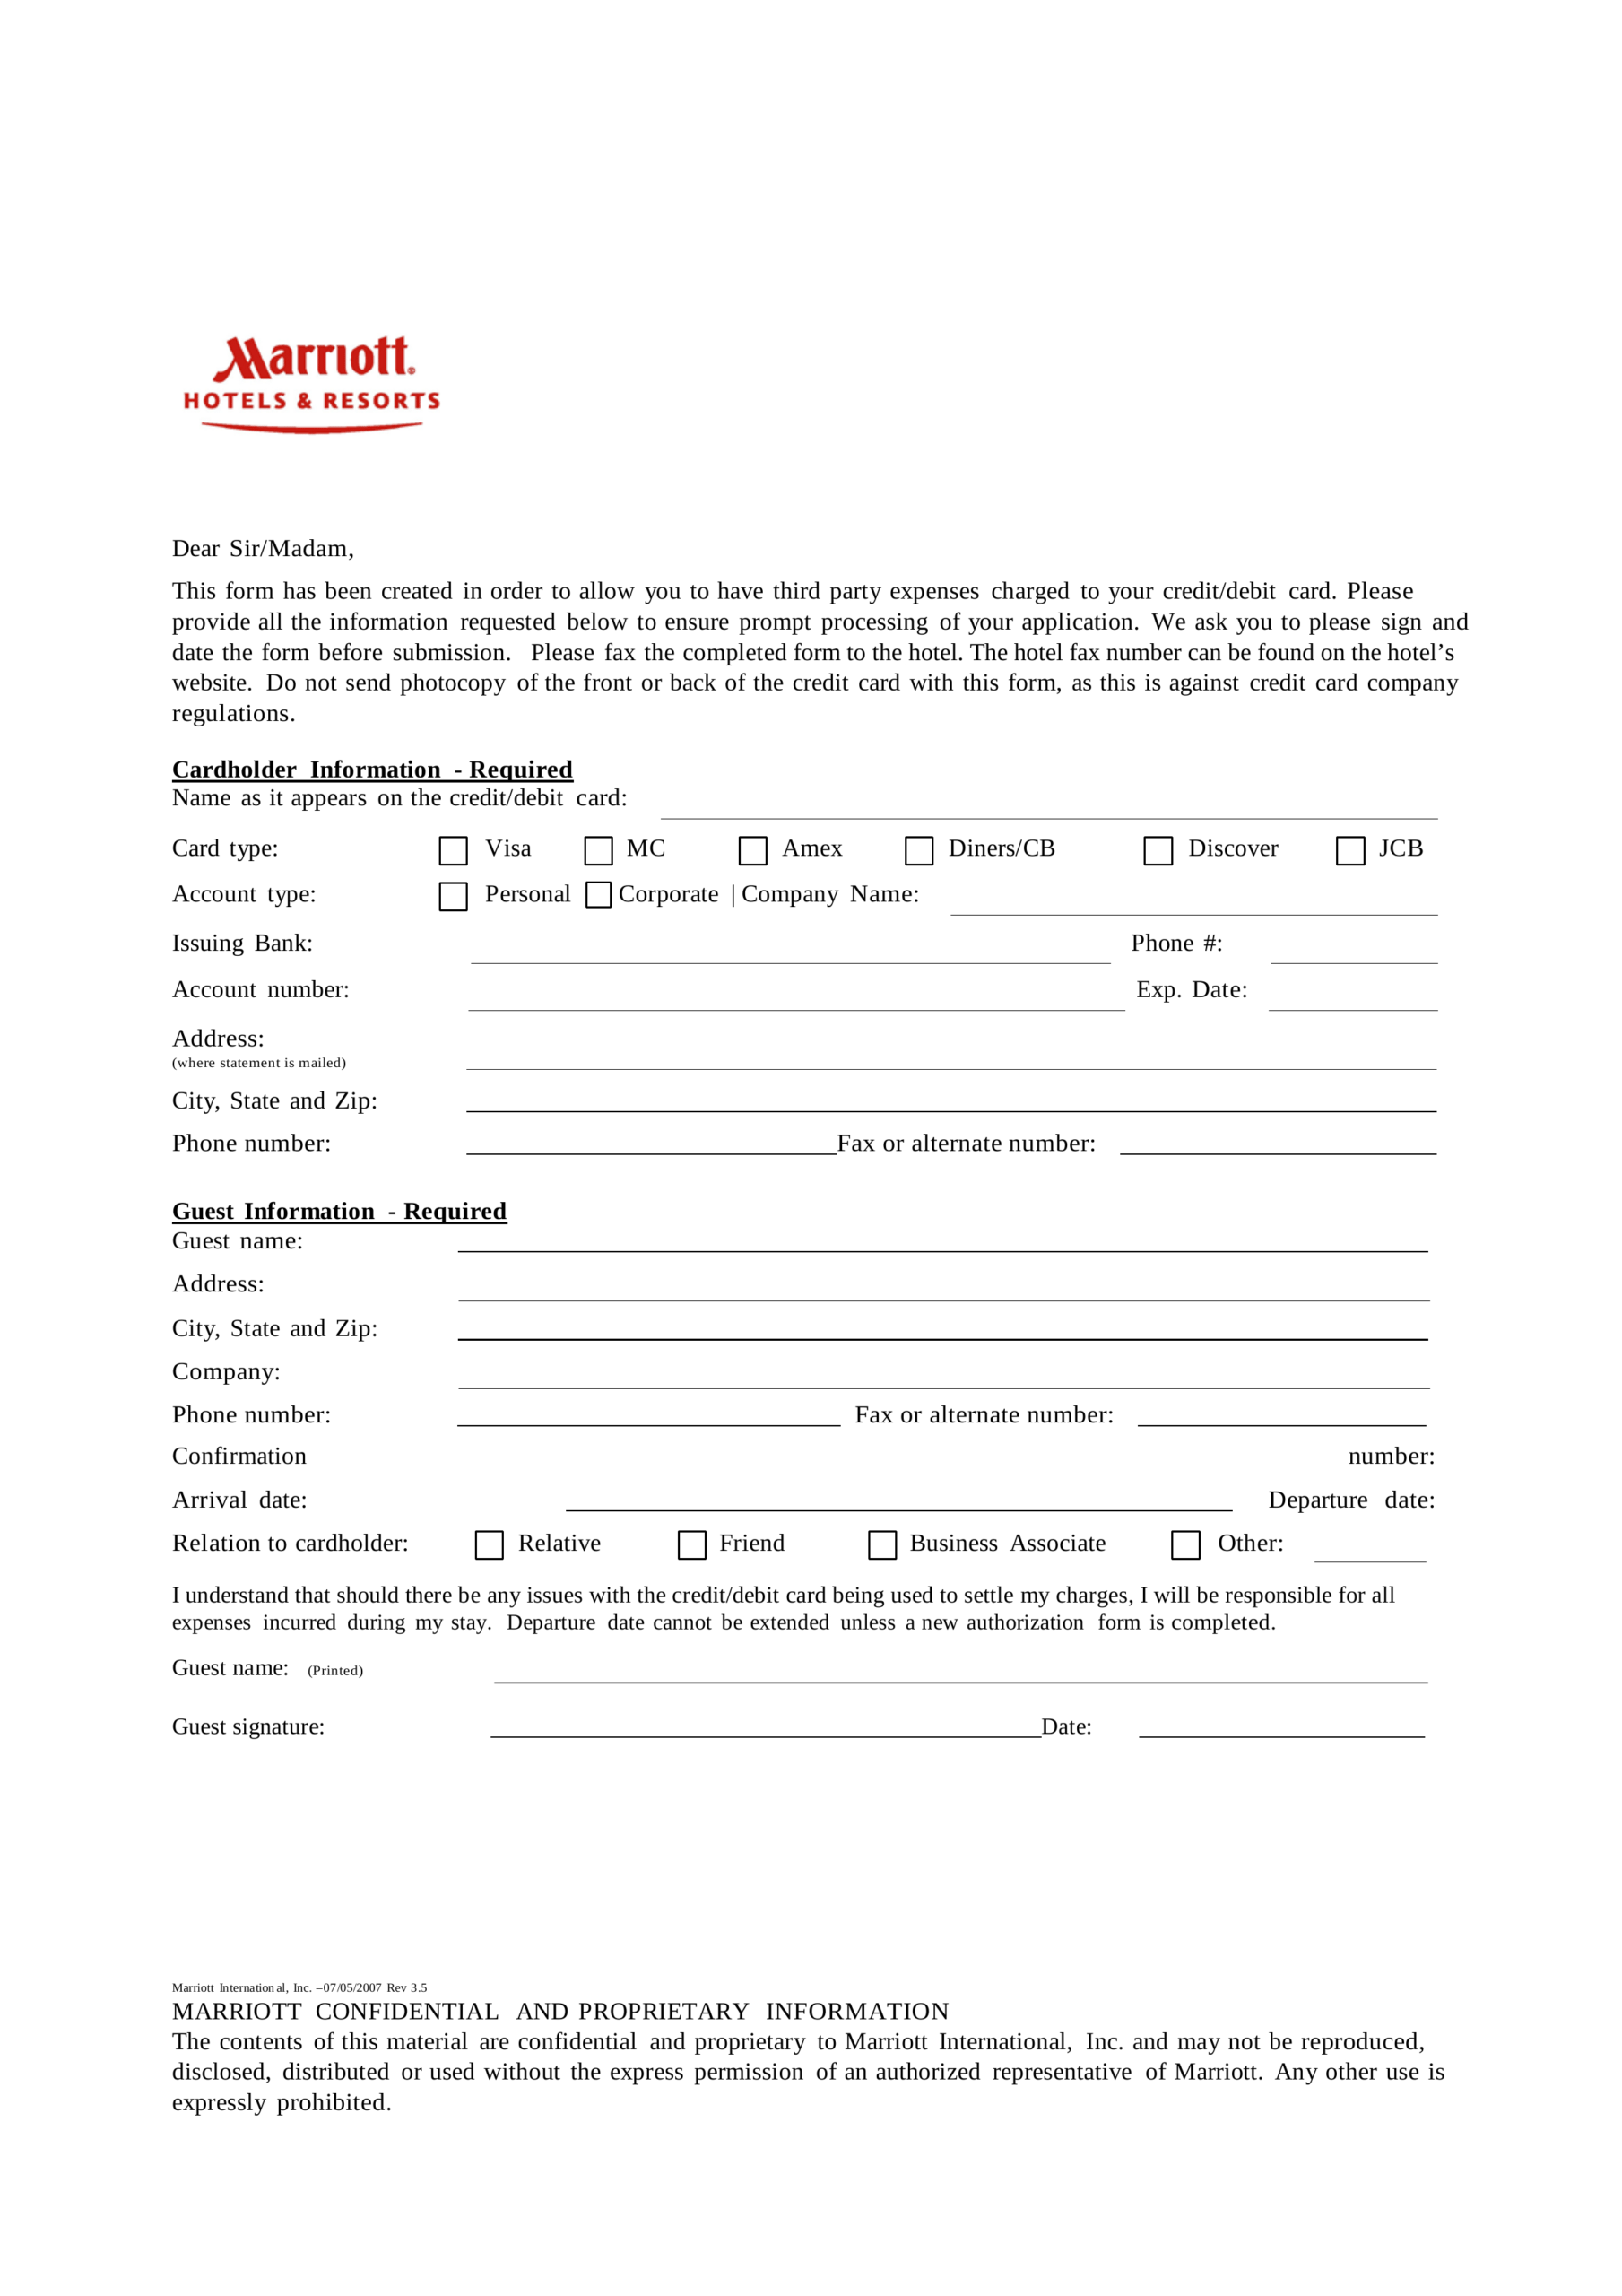 037 Hotel Credit Card Authorization Form Template Word In Hotel Credit Card Authorization Form Template